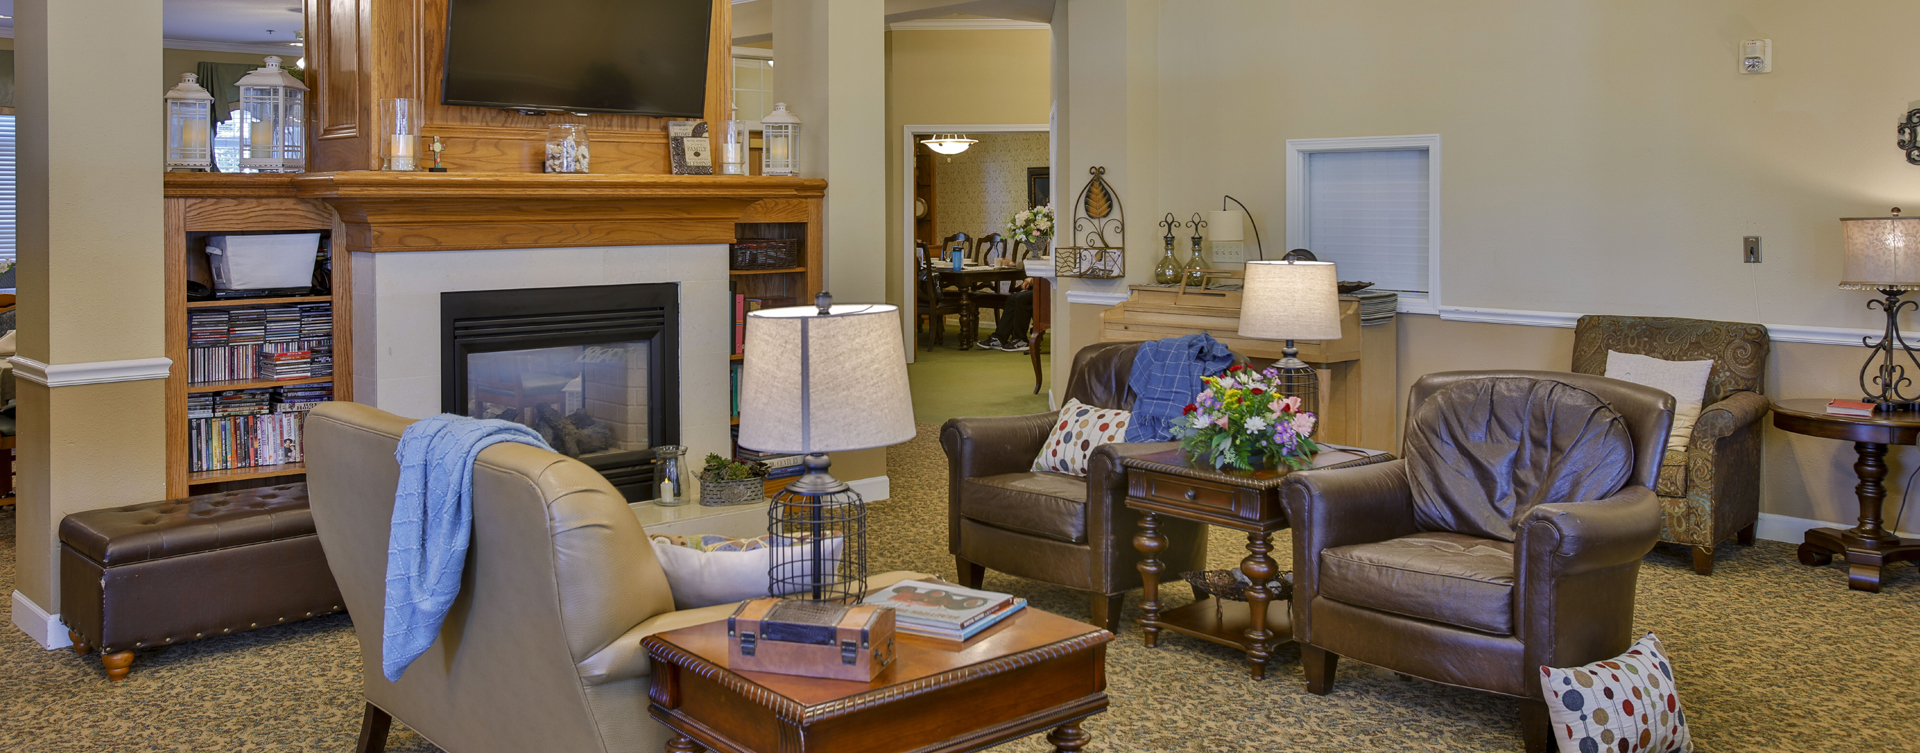 Socialize with friends in the living room at Bickford of Crawfordsville